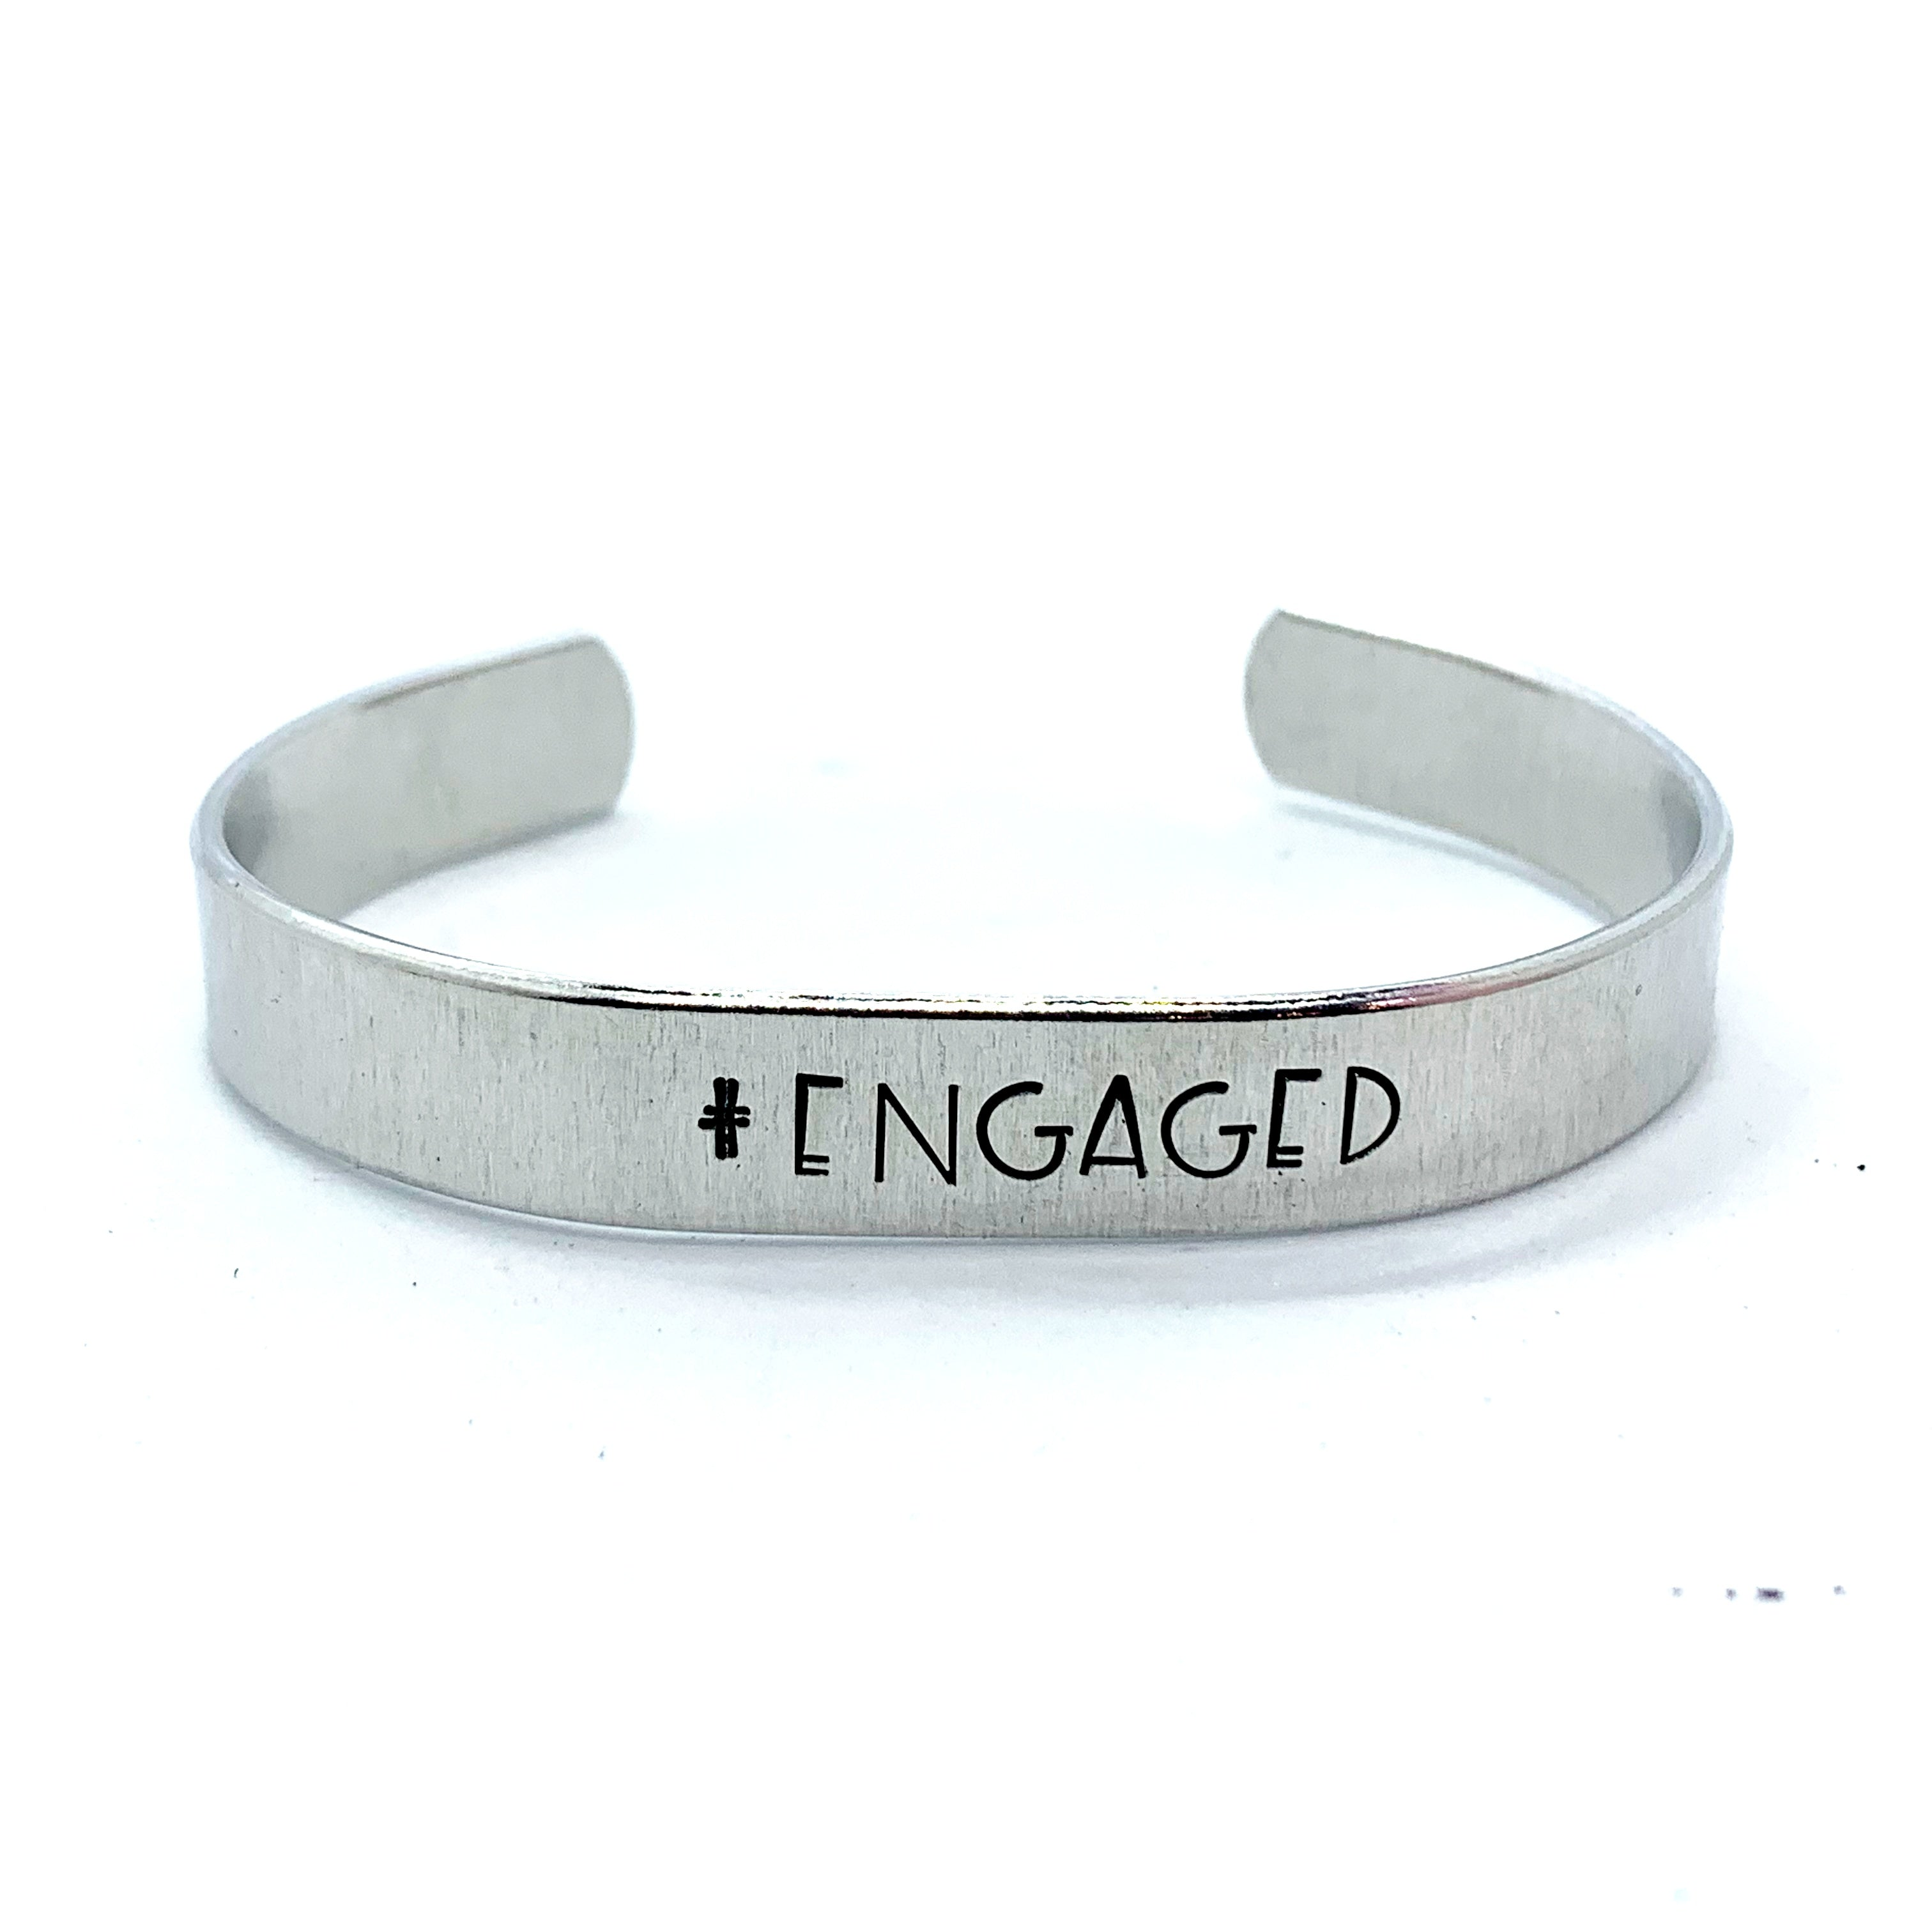 ⅜ inch Aluminum Cuff - #Engaged